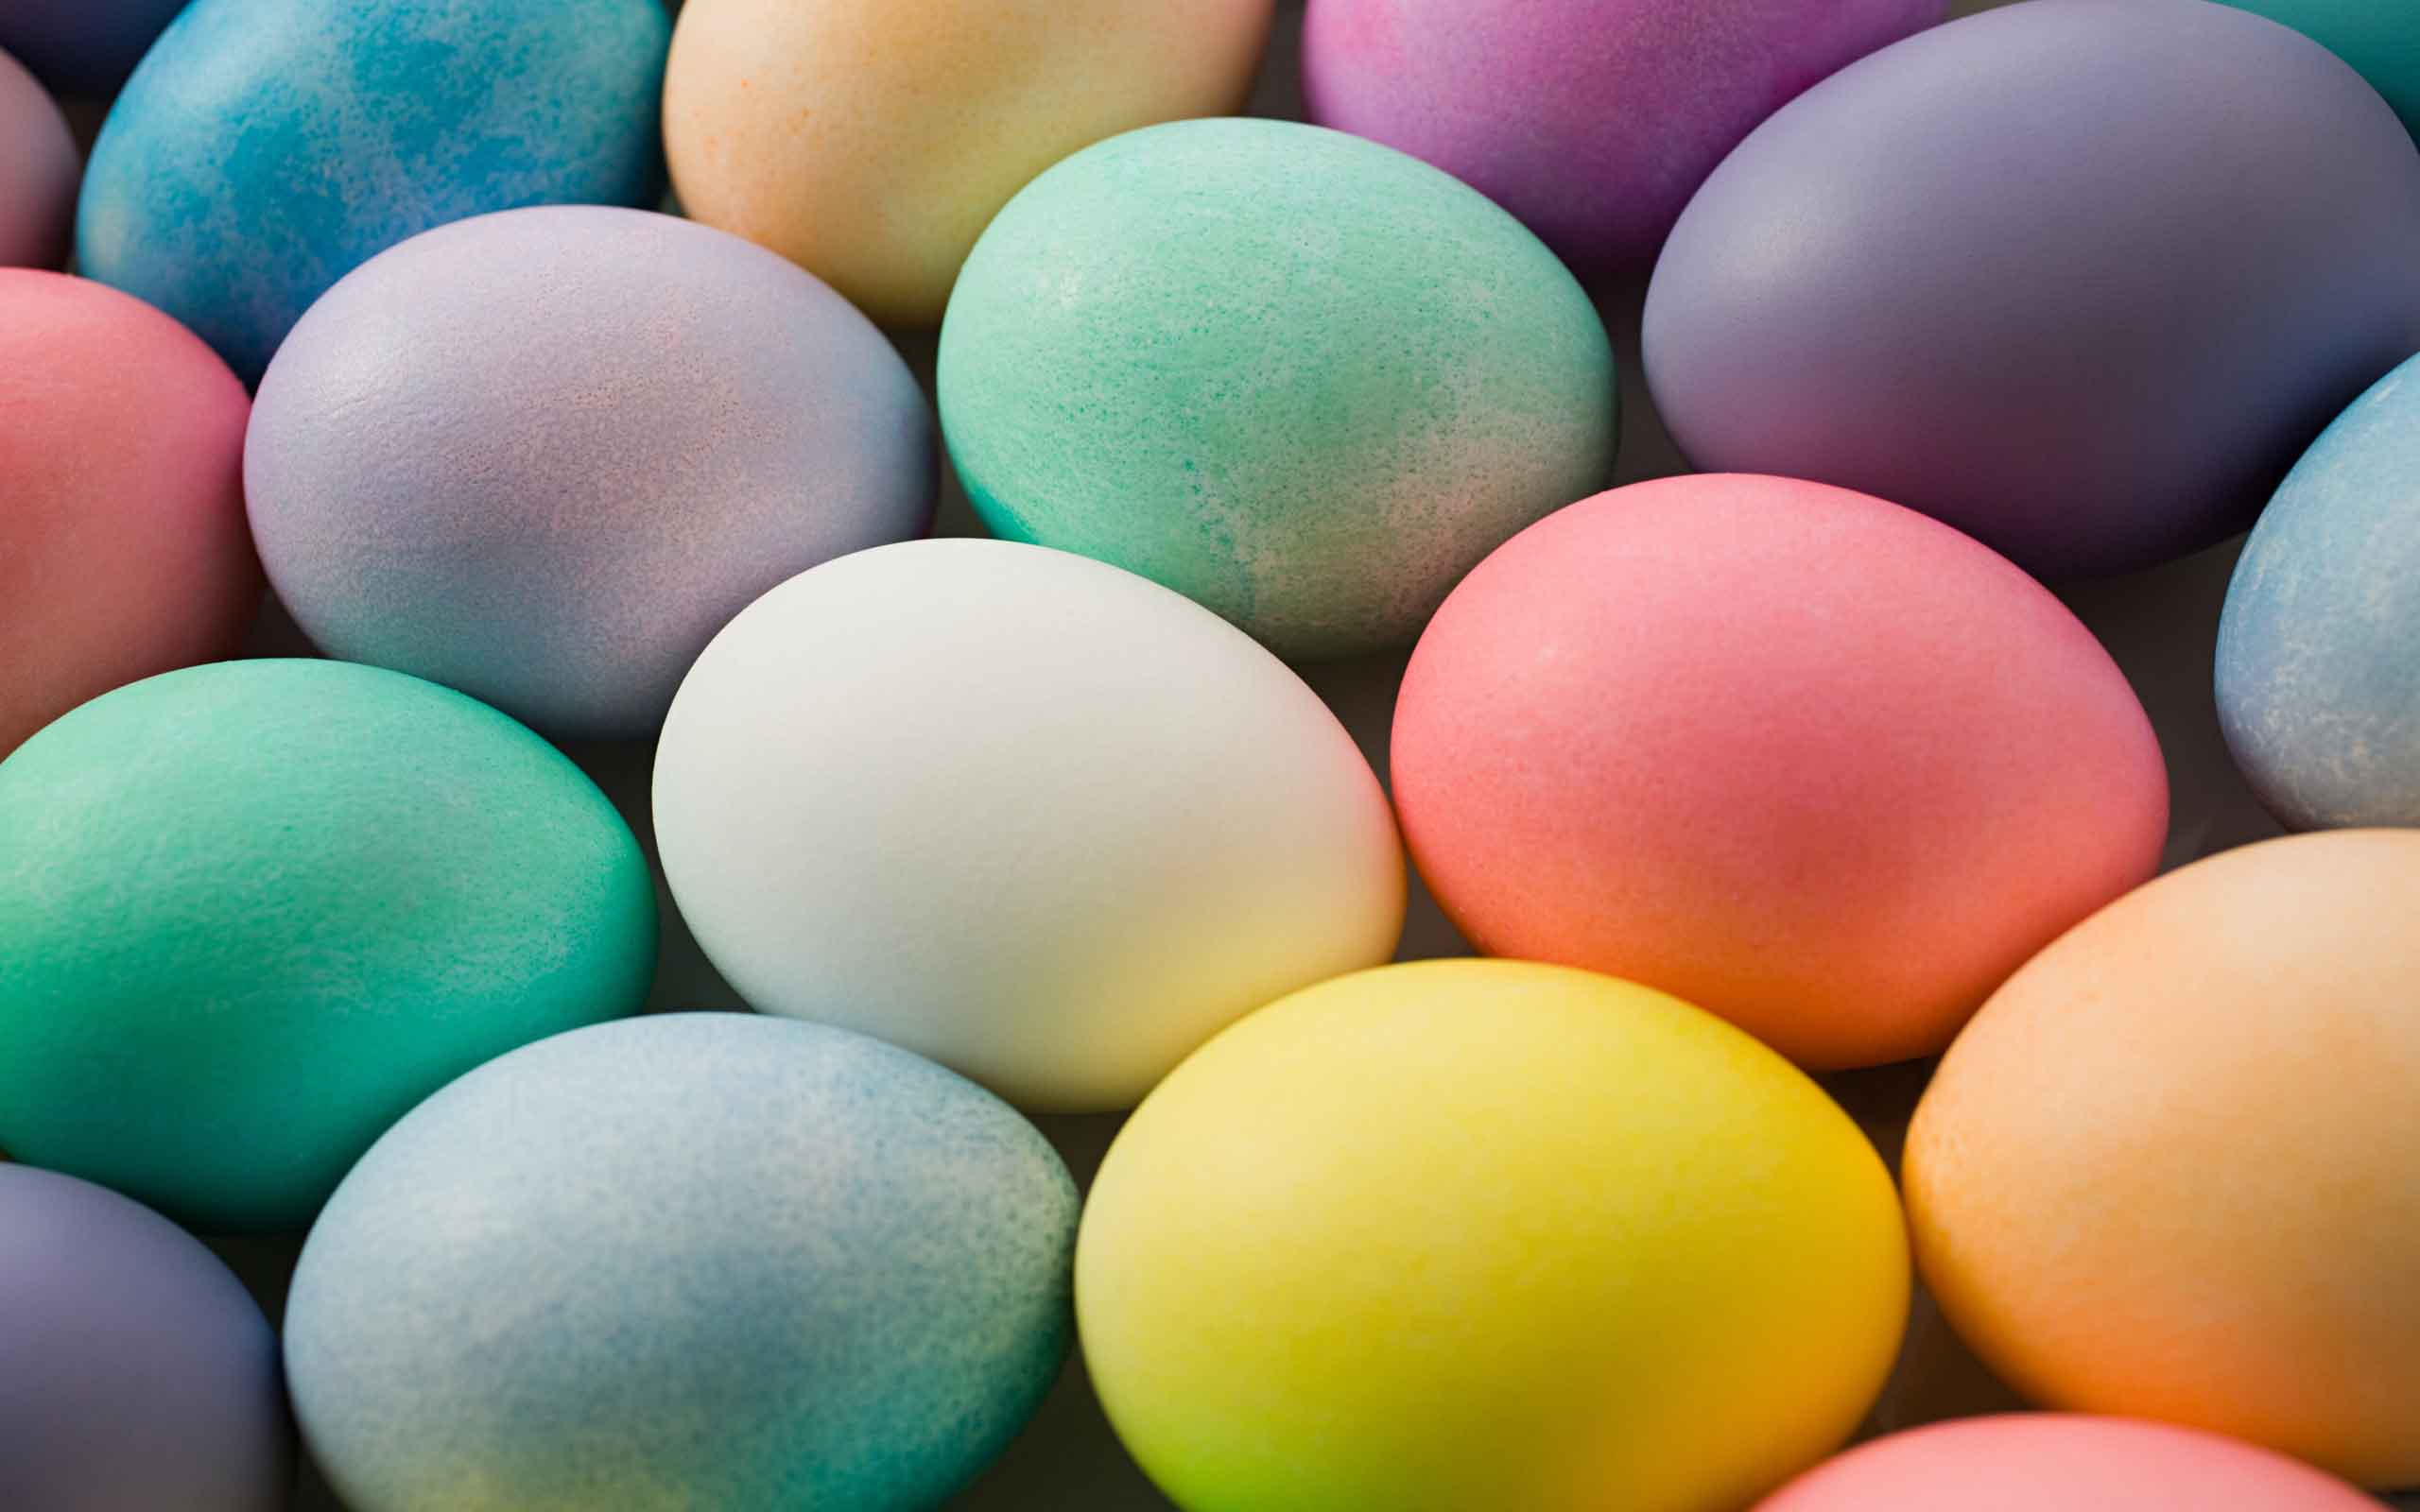 Colorful Easter Eggs Wallpaper 28245 2560x1600 px 2560x1600